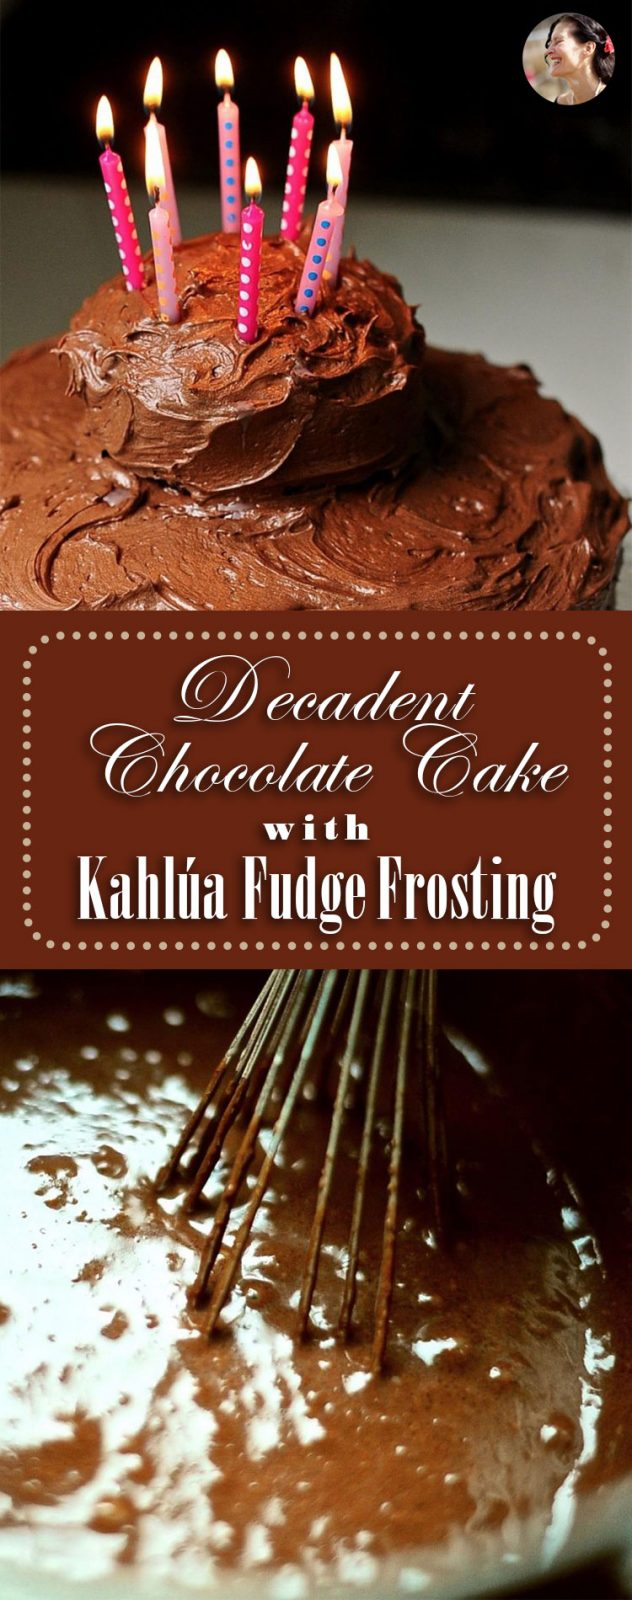 Decadent Old fashioned Vegan Chocolate Cake with Kahlúa Fudge Frosting) made with aquafaba egg replacer SunnysideHanne #sunnysidehanne #vegan  #veganrecipes  #vegandesserts #vegancake #vegancakerecipes #chocolate #chocolatecake #chocolatecakerecipe #veganbaking #veganbakingrecipes #noeggs  #dairyfree #dairyfreerecipes #dairyfreedessert #dairyfreebaking #dairyfreecake #aquafaba